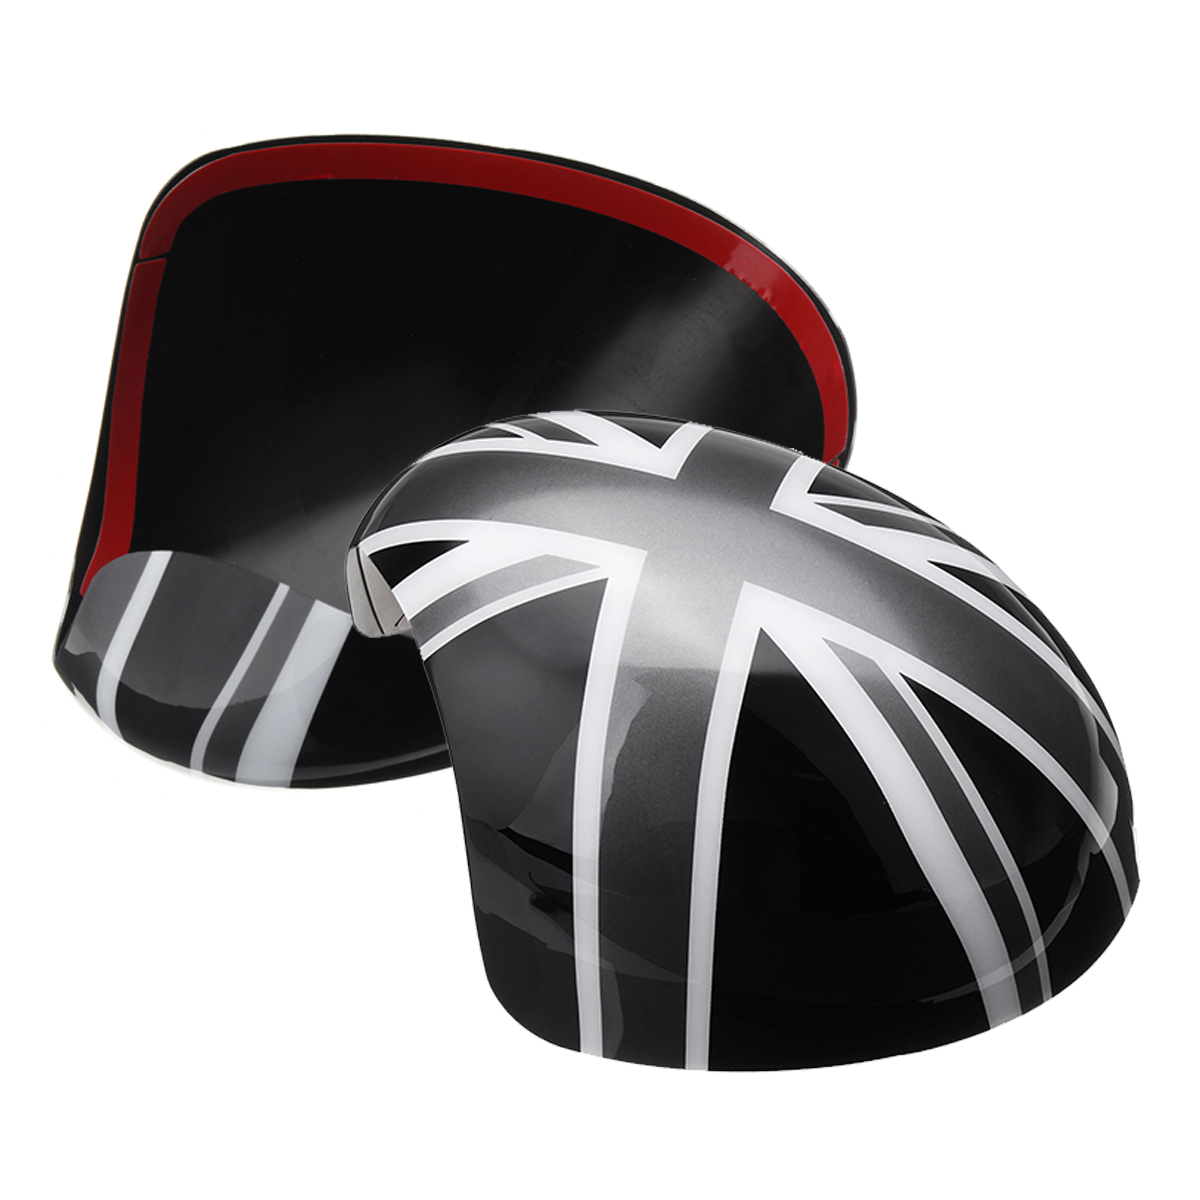 Union Jack WING Mirror Covers Power Fold Mirror For MINI Cooper R55 R56 R57 R60